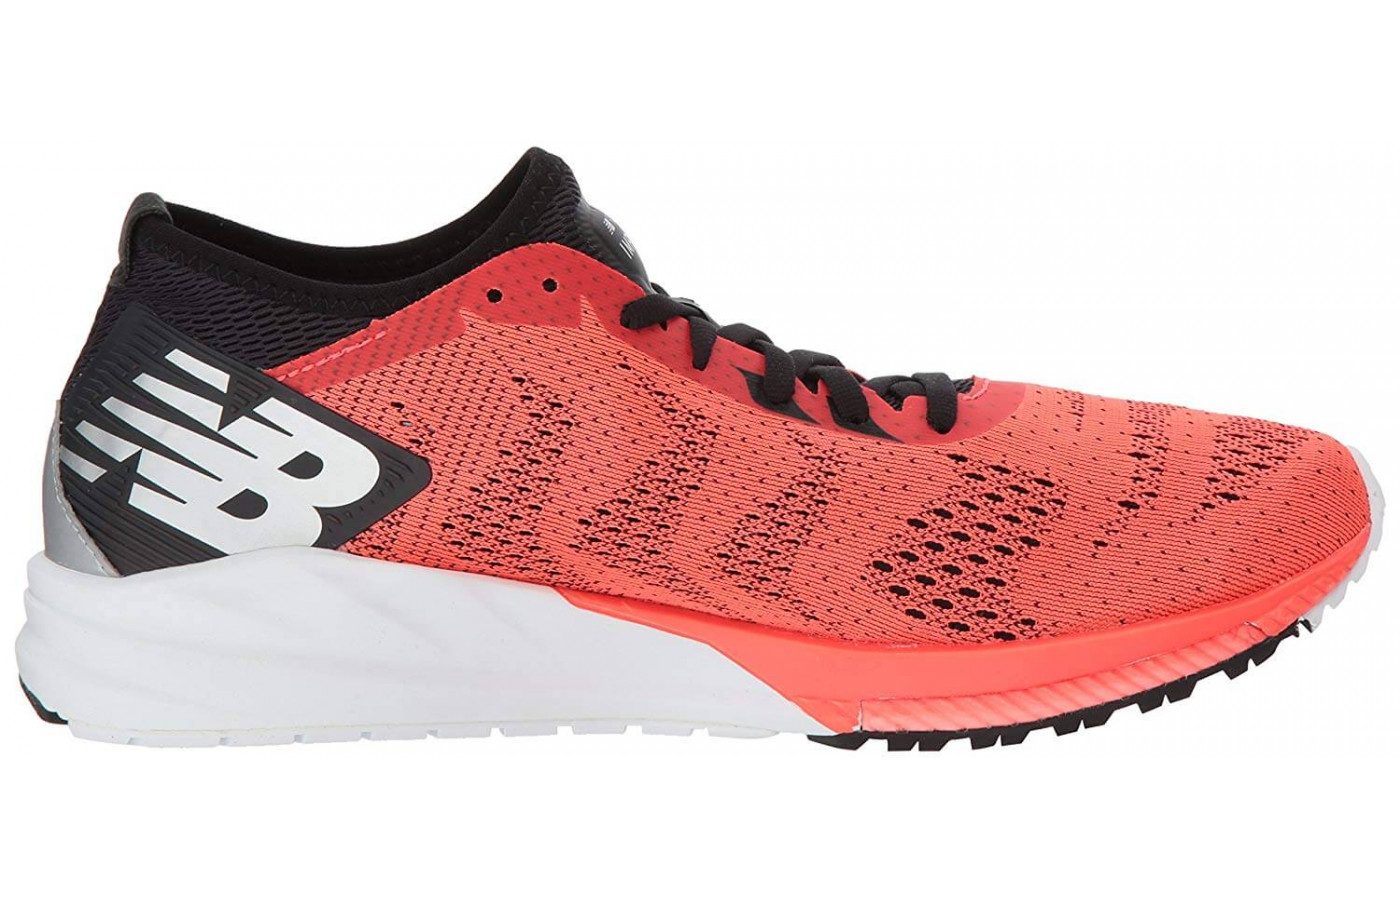 New Balance Fuelcell Impulse side